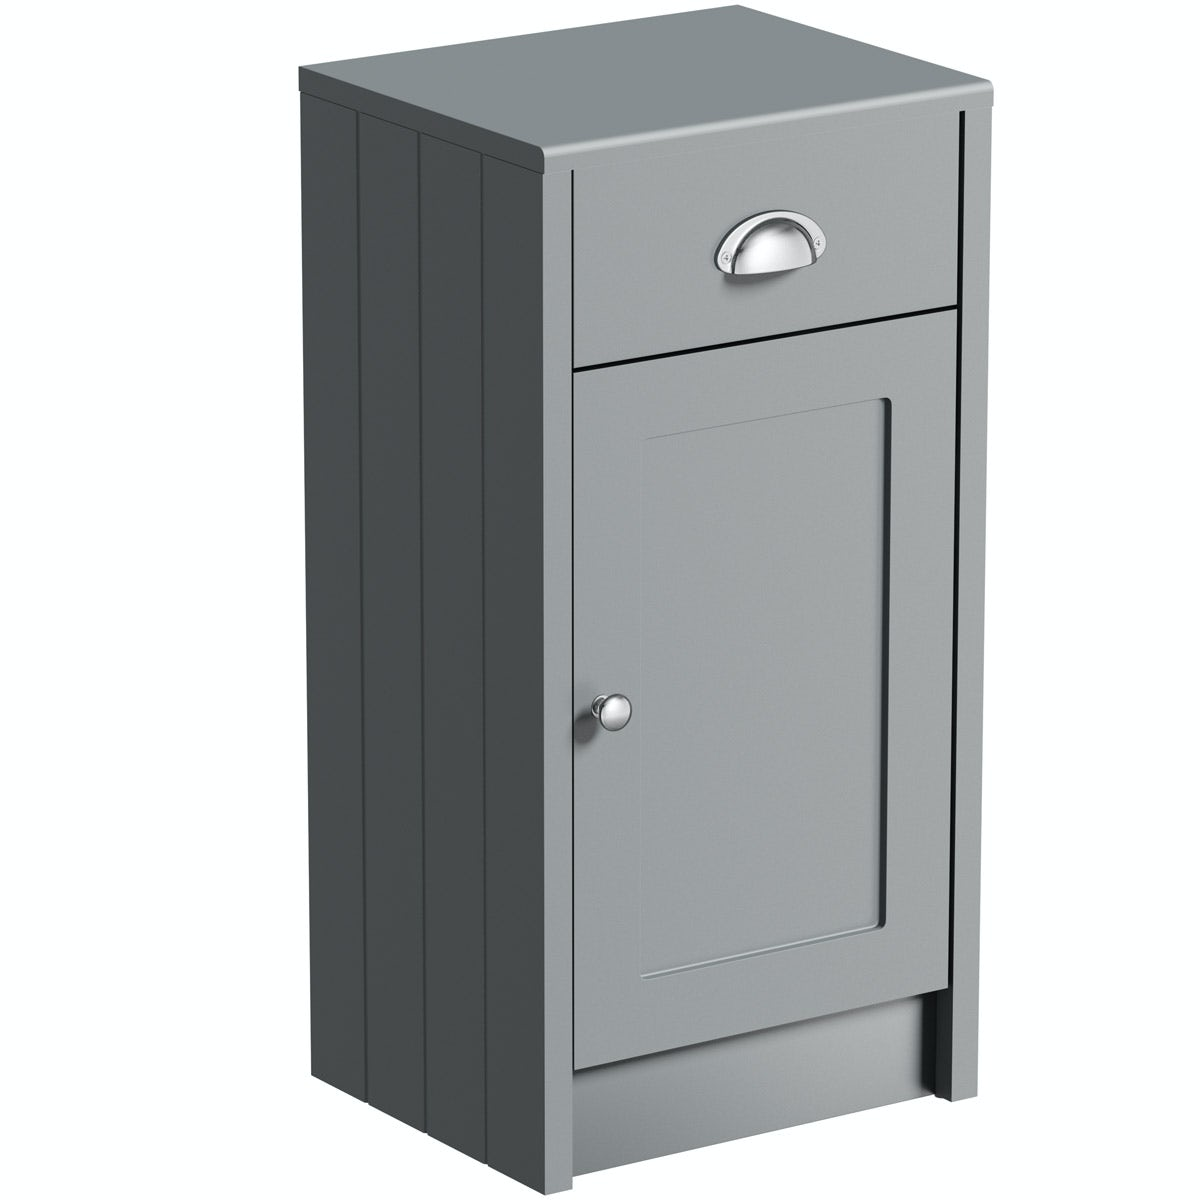 The Bath Co. Dulwich stone grey storage unit